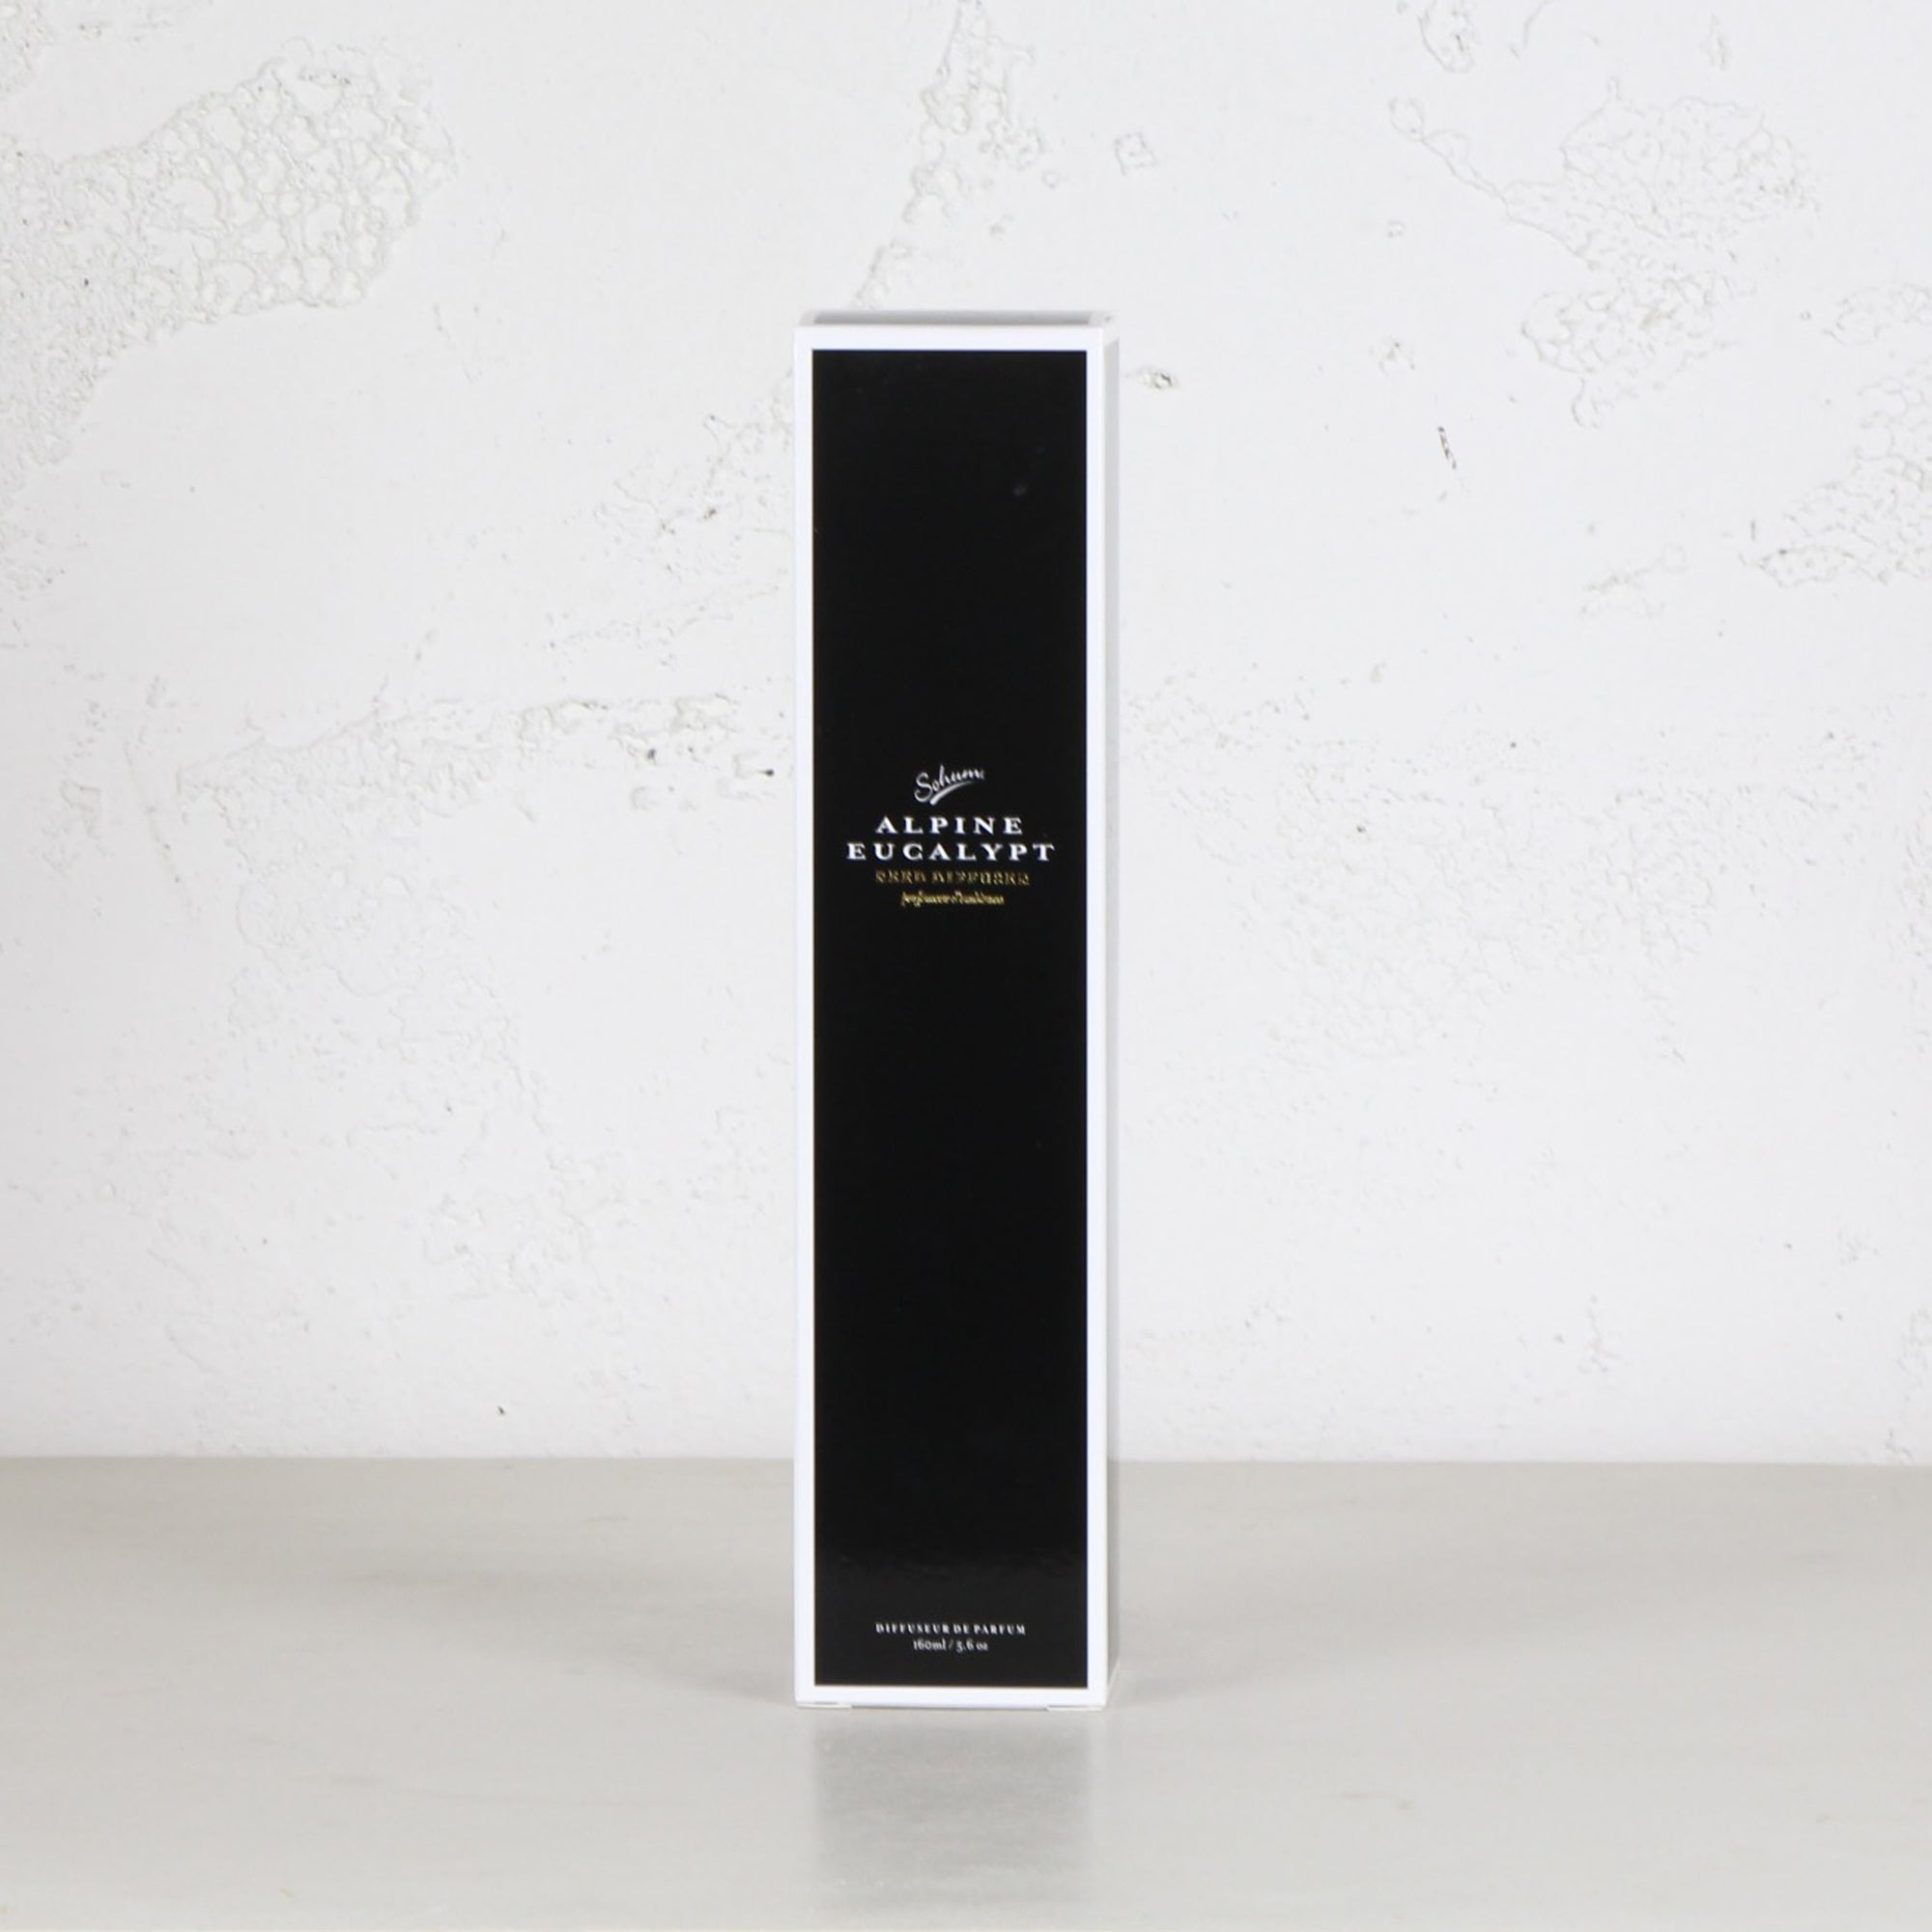 SOHUM REED DIFFUSER  |  ALPINE EUCALYPT  |  FRAGRANCE DIFFUSER